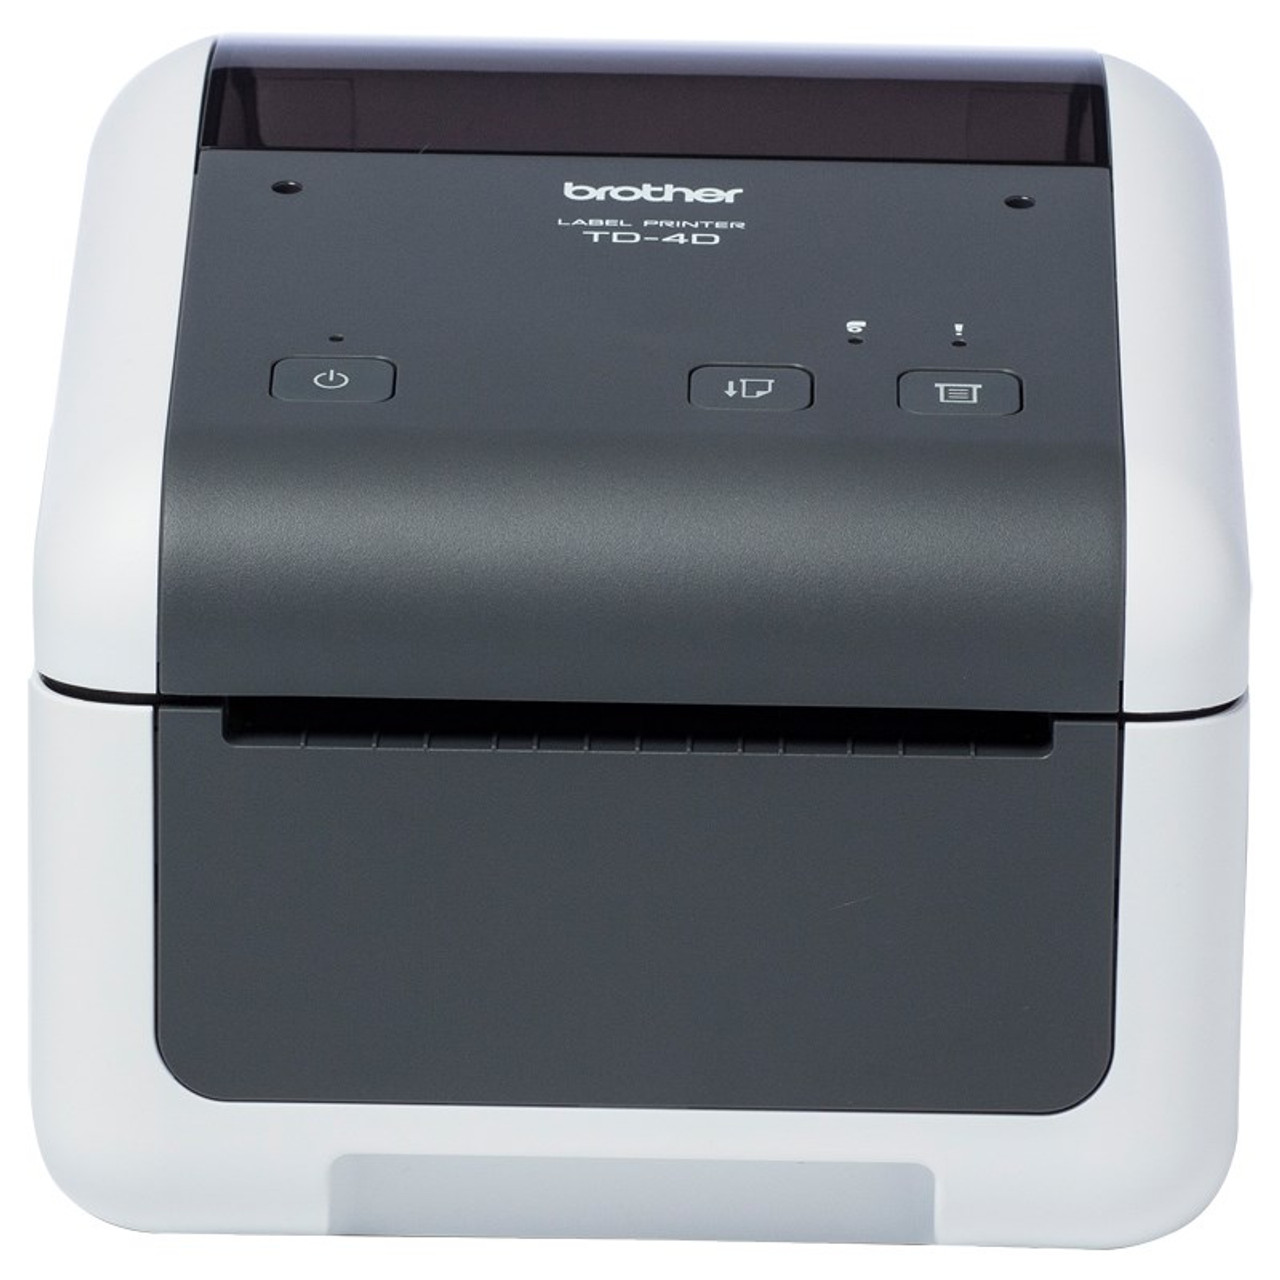 Image for Brother TD-4420DN 203dpi Direct Thermal Label/Receipt Printer CX Computer Superstore